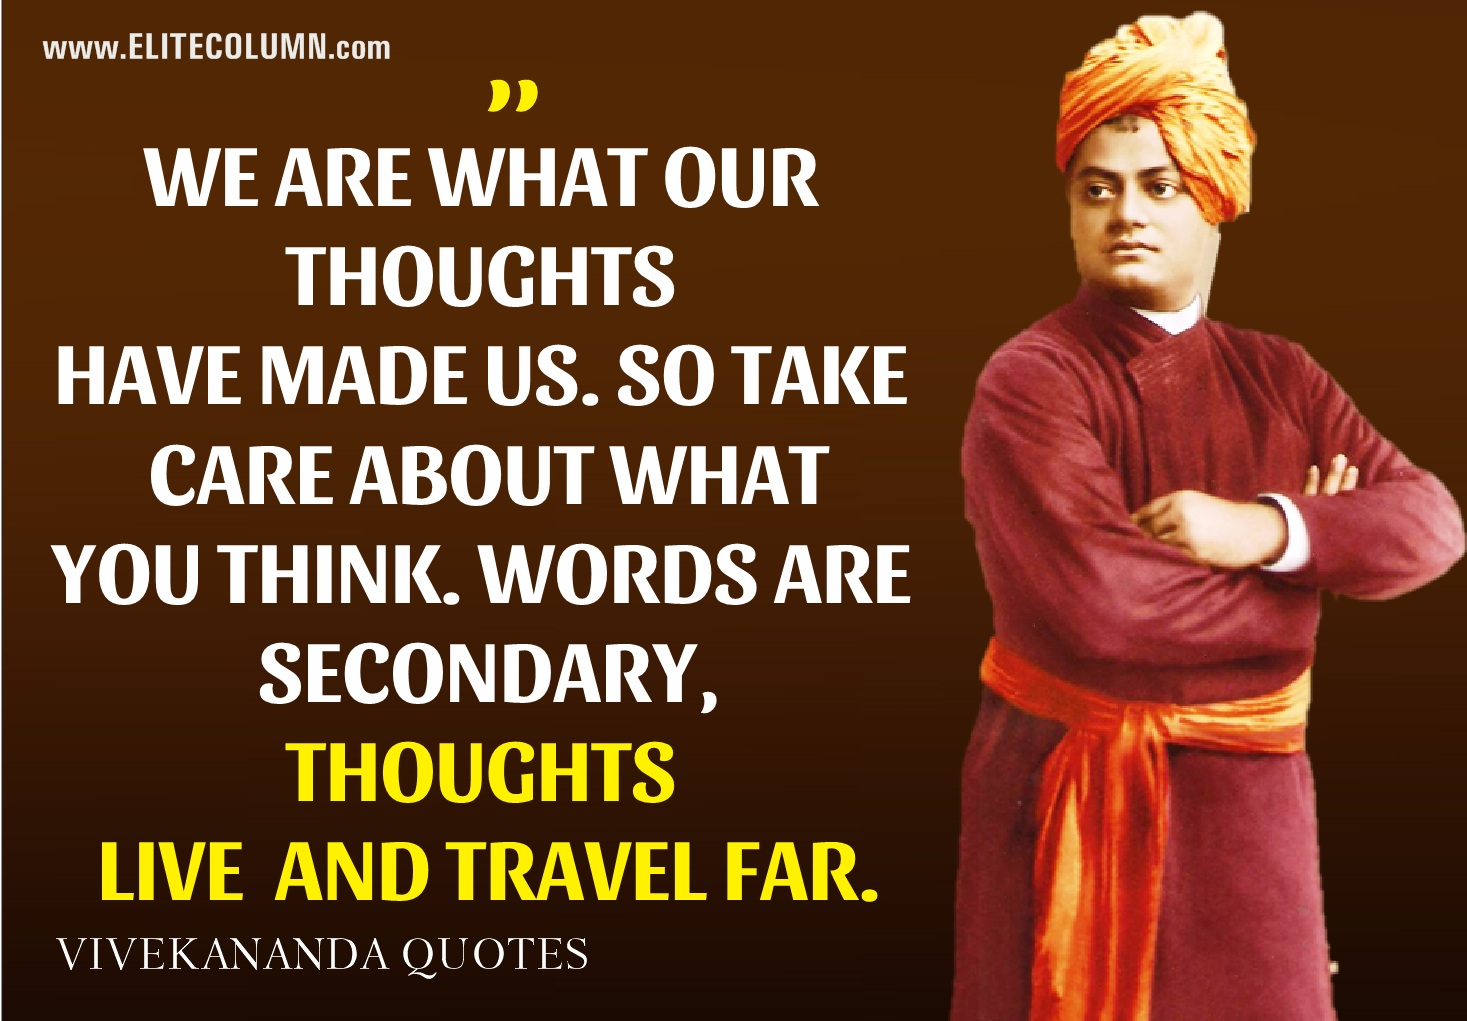 Wallpapers With Quotes On Life In Hindi 10 Swami Vivekananda Quotes Which Are Still Relevant